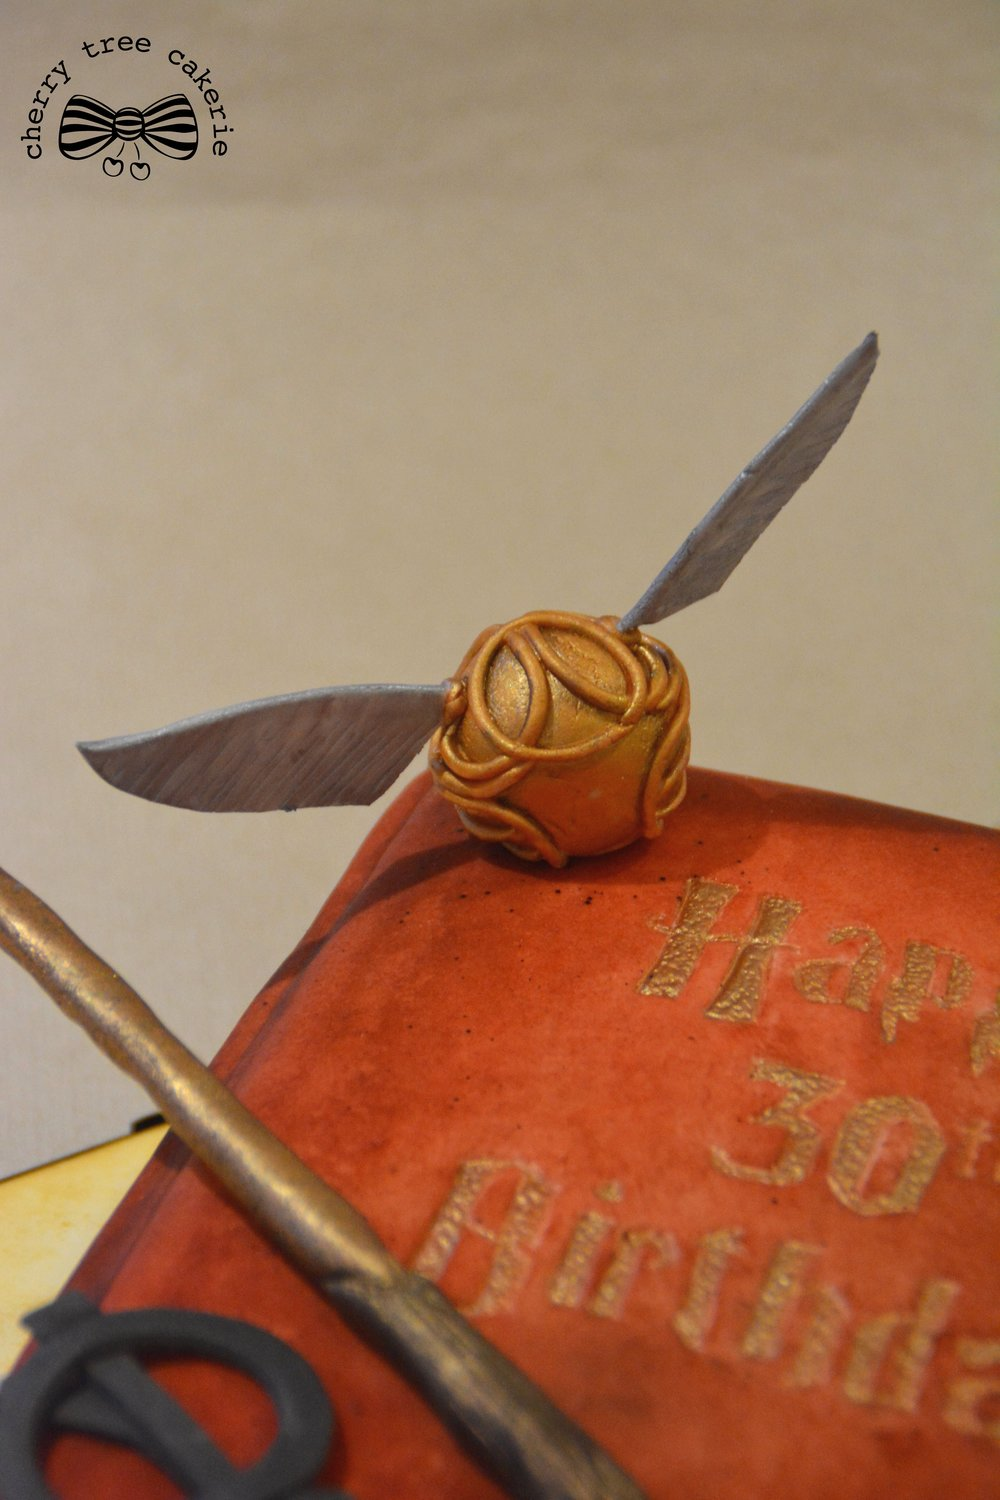 Harry Potter-spellbook-cake-with-snitch